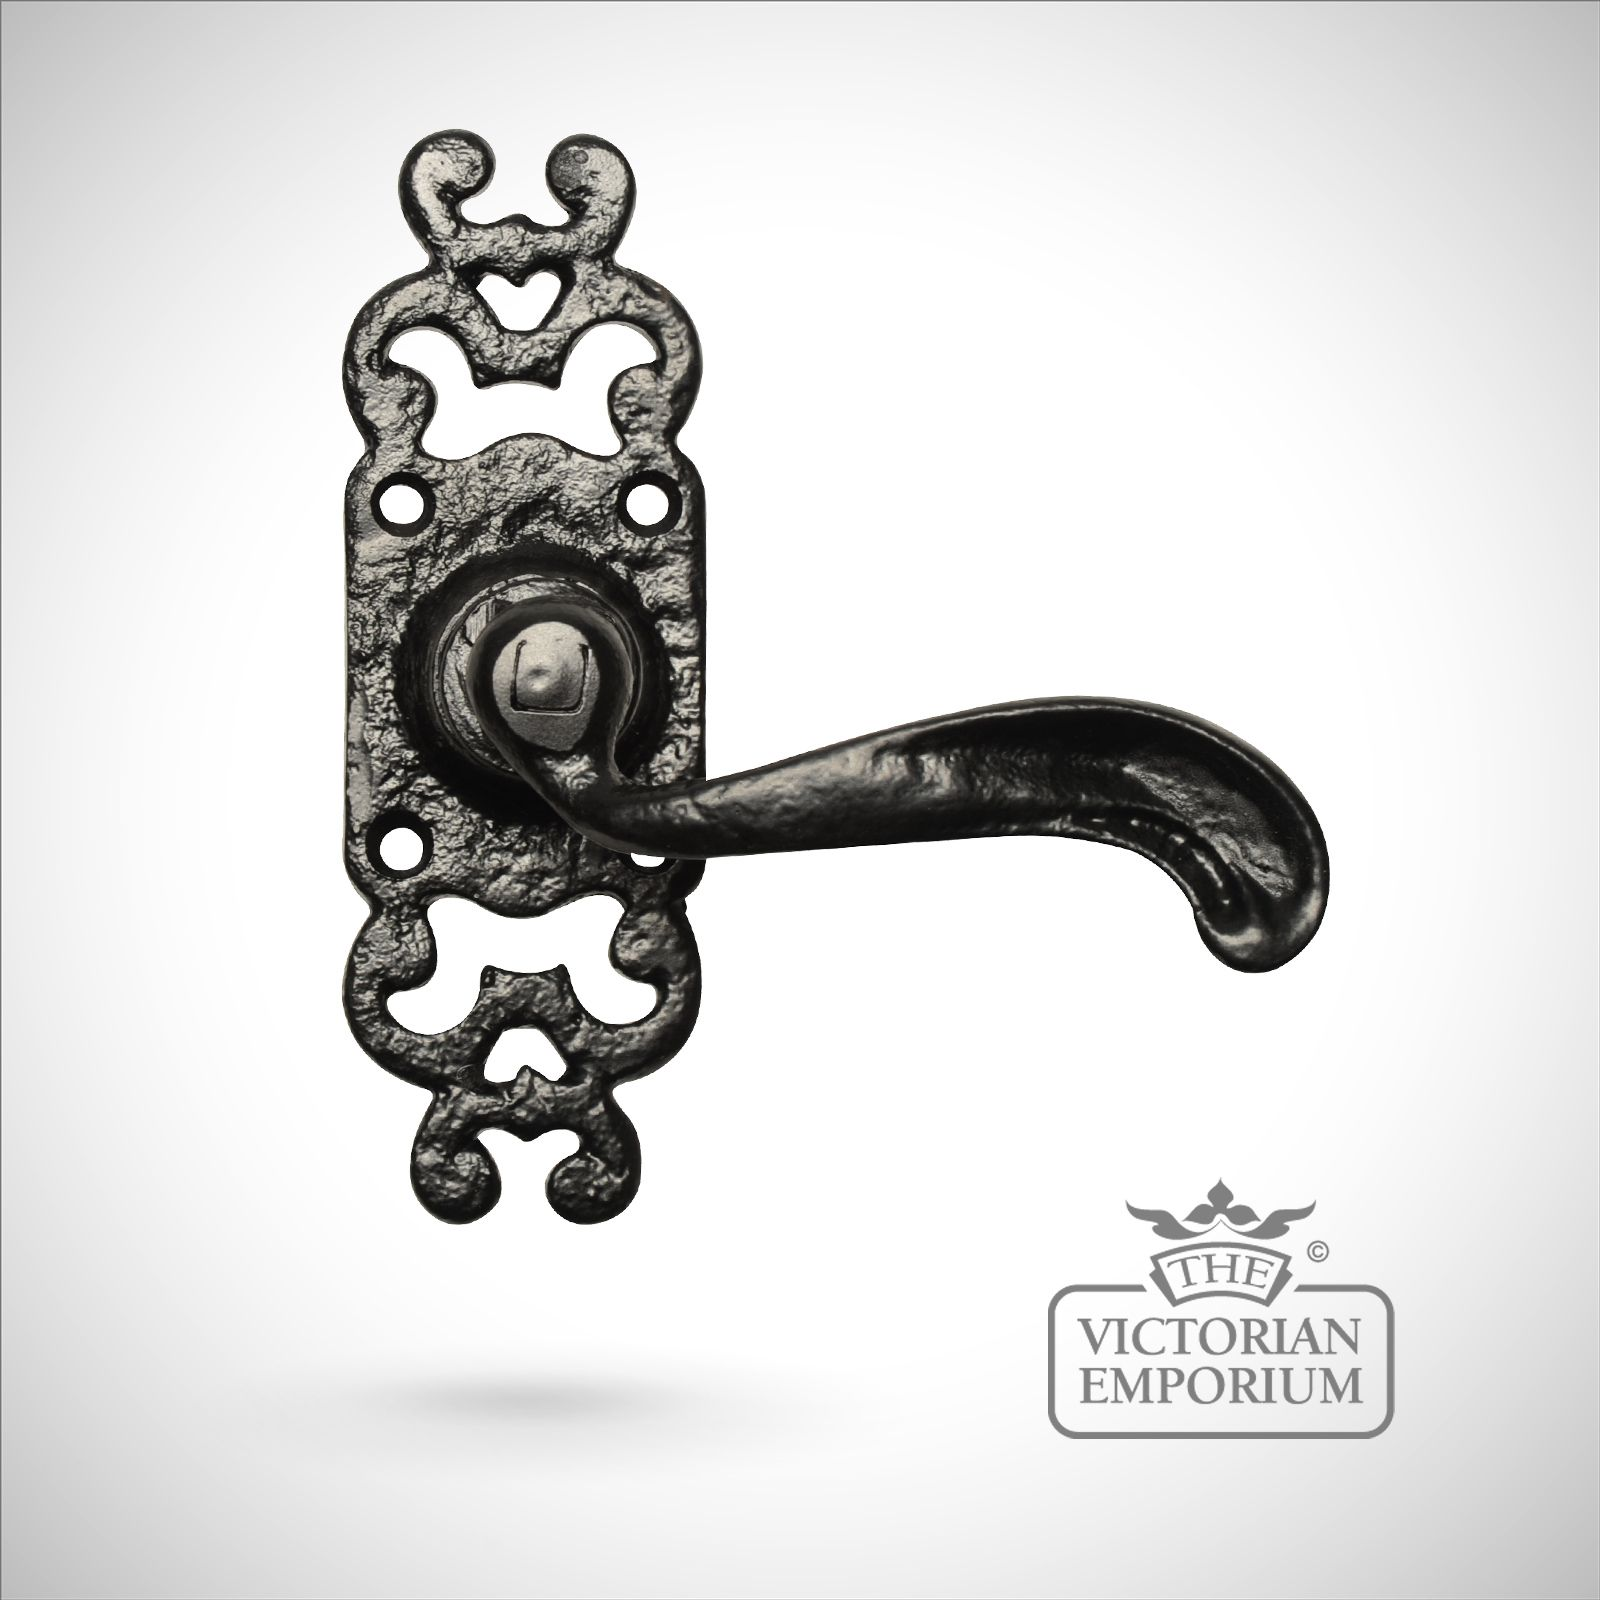 Highly Decorative Black Iron Handcrafted Door Handle. Wood False Ceiling Design For Living Room. Living Room Ideas Black Leather Furniture. The Living Room Dc. Hgtv Design Ideas Living Room. Area Rug In Living Room. Color Schemes For Living Rooms With Green Furniture. Living Room Traduzione In Italiano. Wall Unit In Living Room